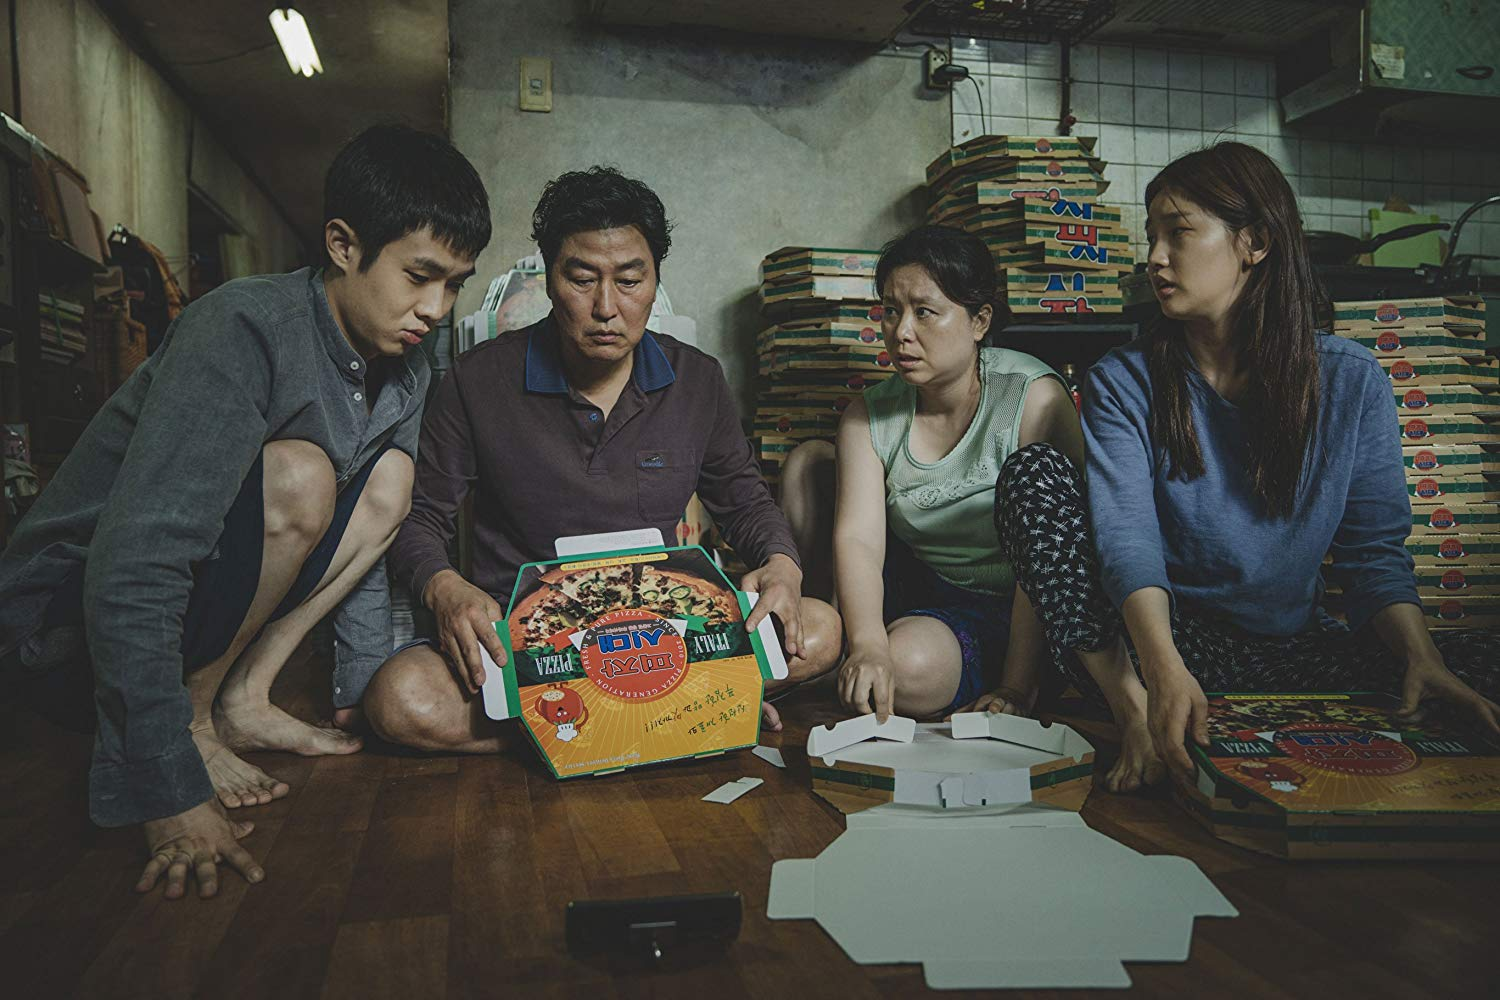 While Bong's international satirical-thriller presents comedic elements, it also takes audiences through a dark journey of difficult socioeconomic differences.